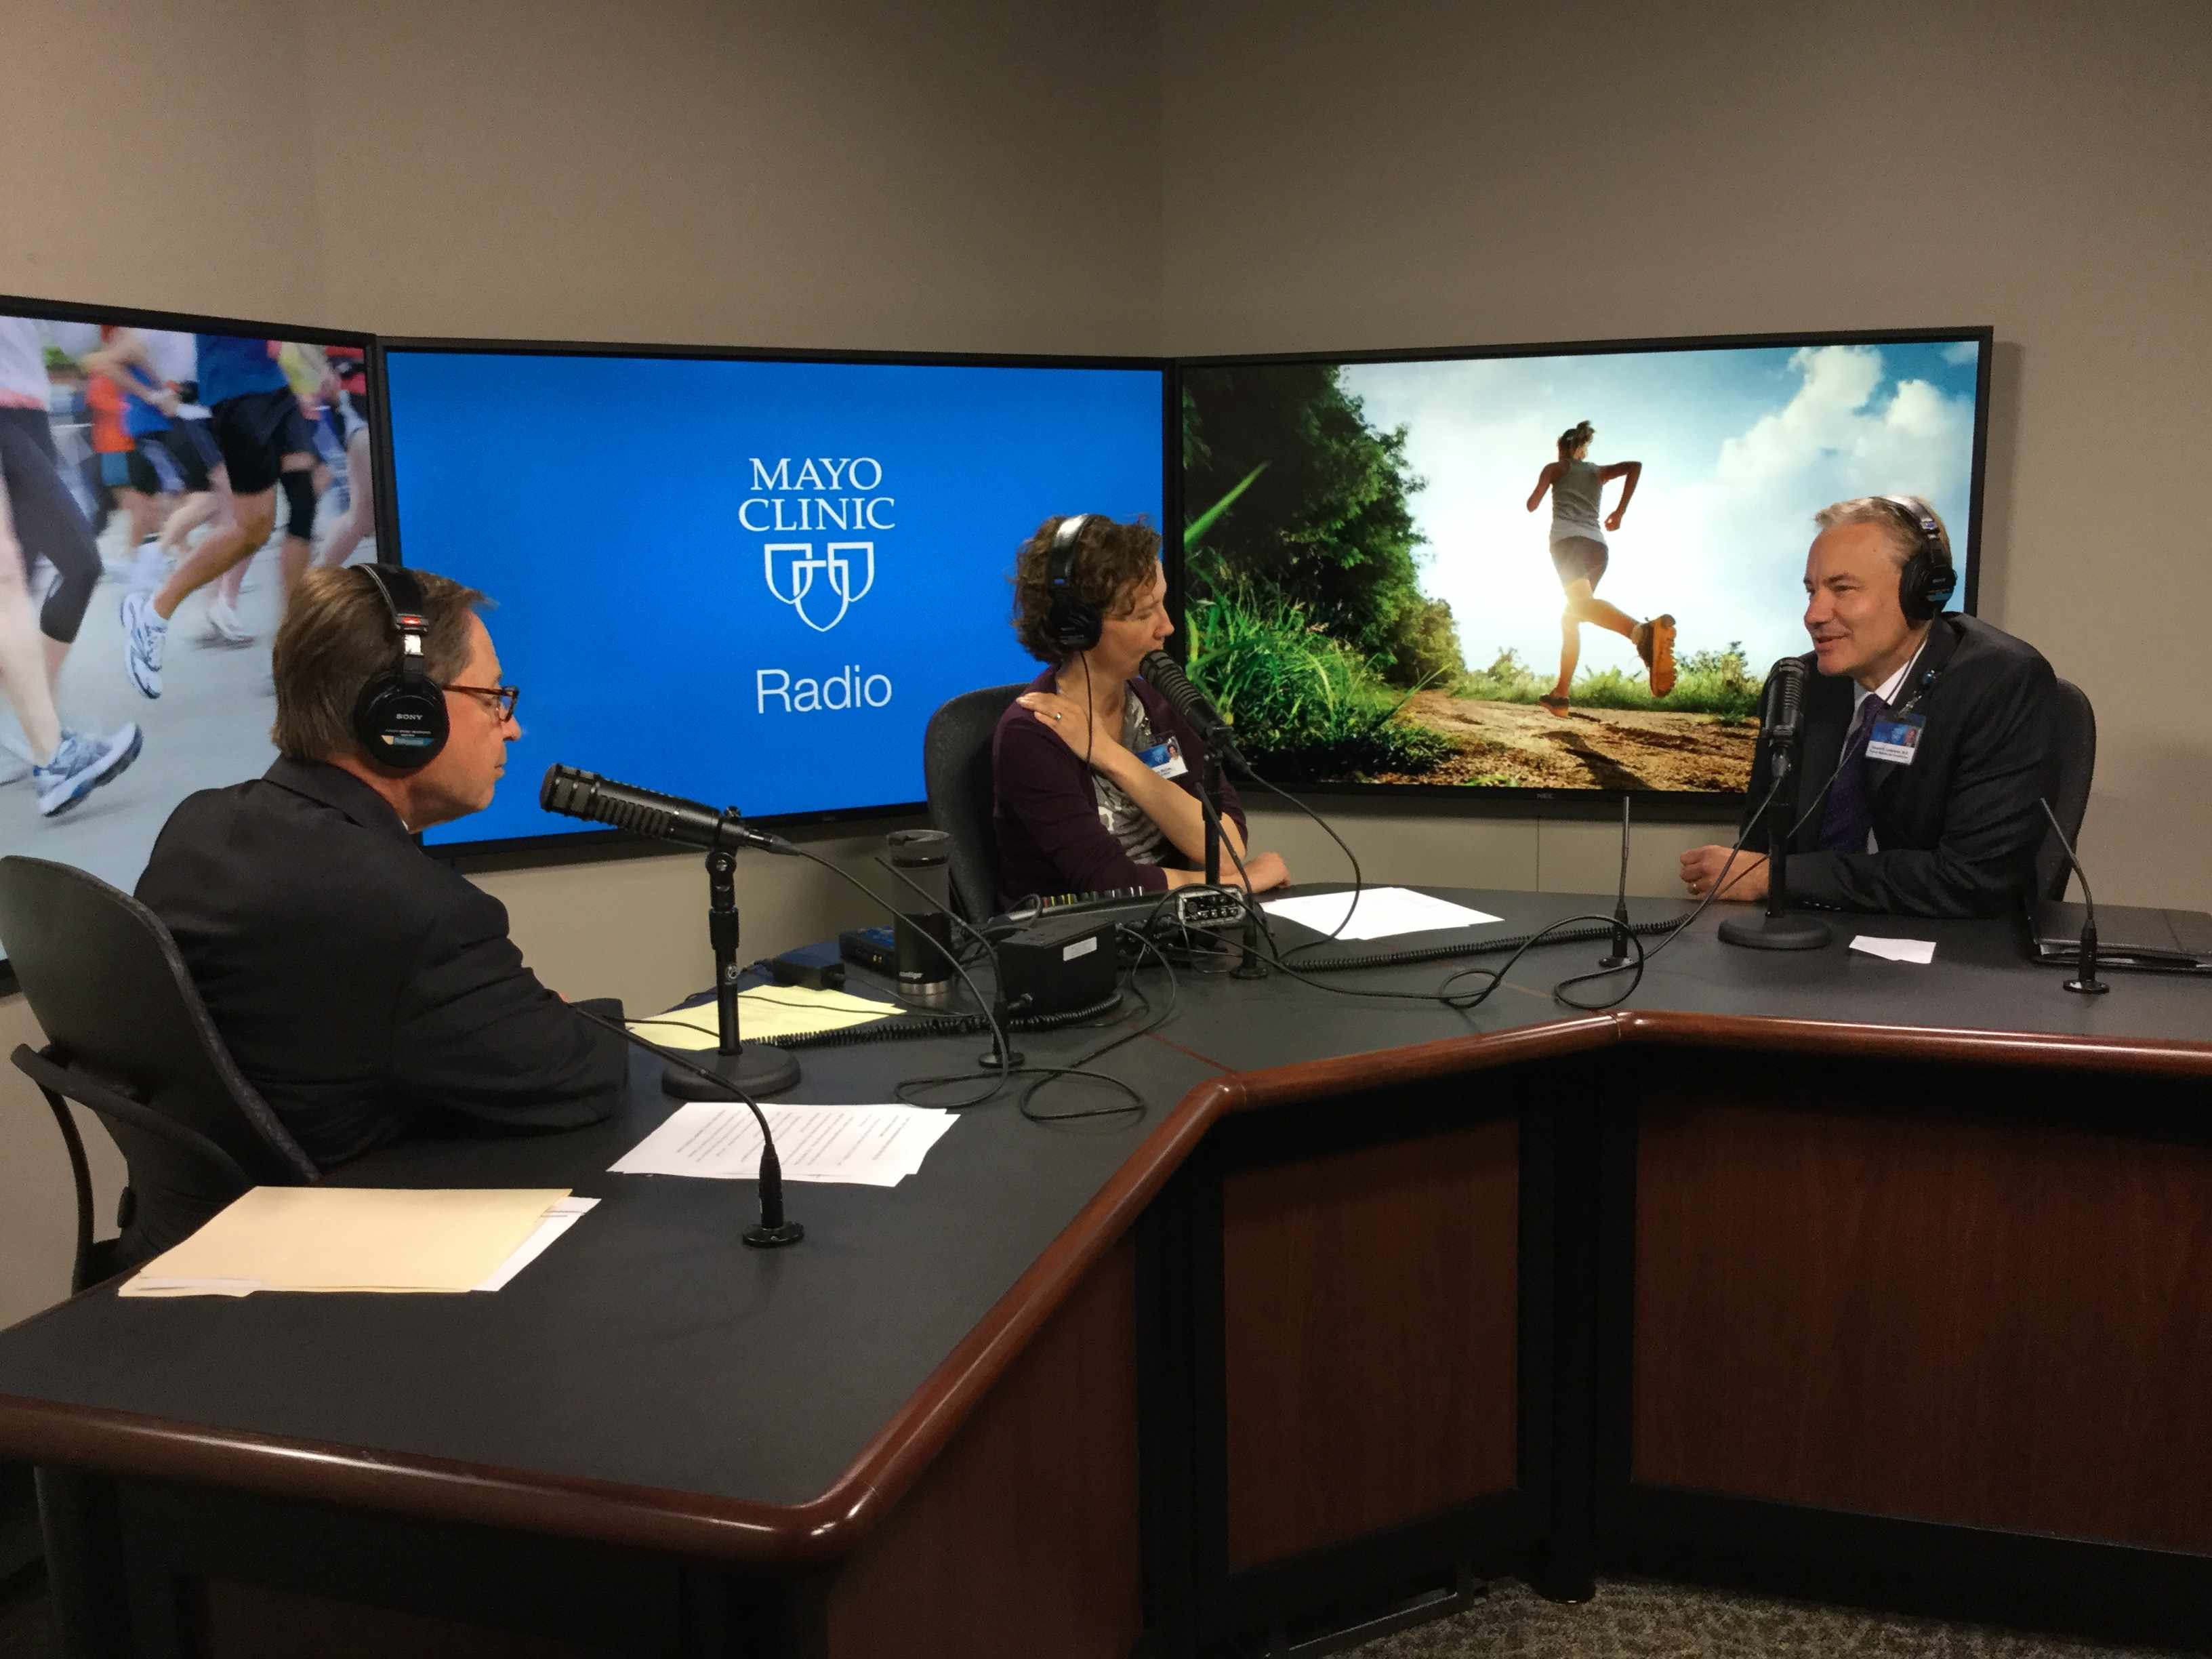 Dr. Ed Laskowski being interviewed on Mayo Clinic Radio